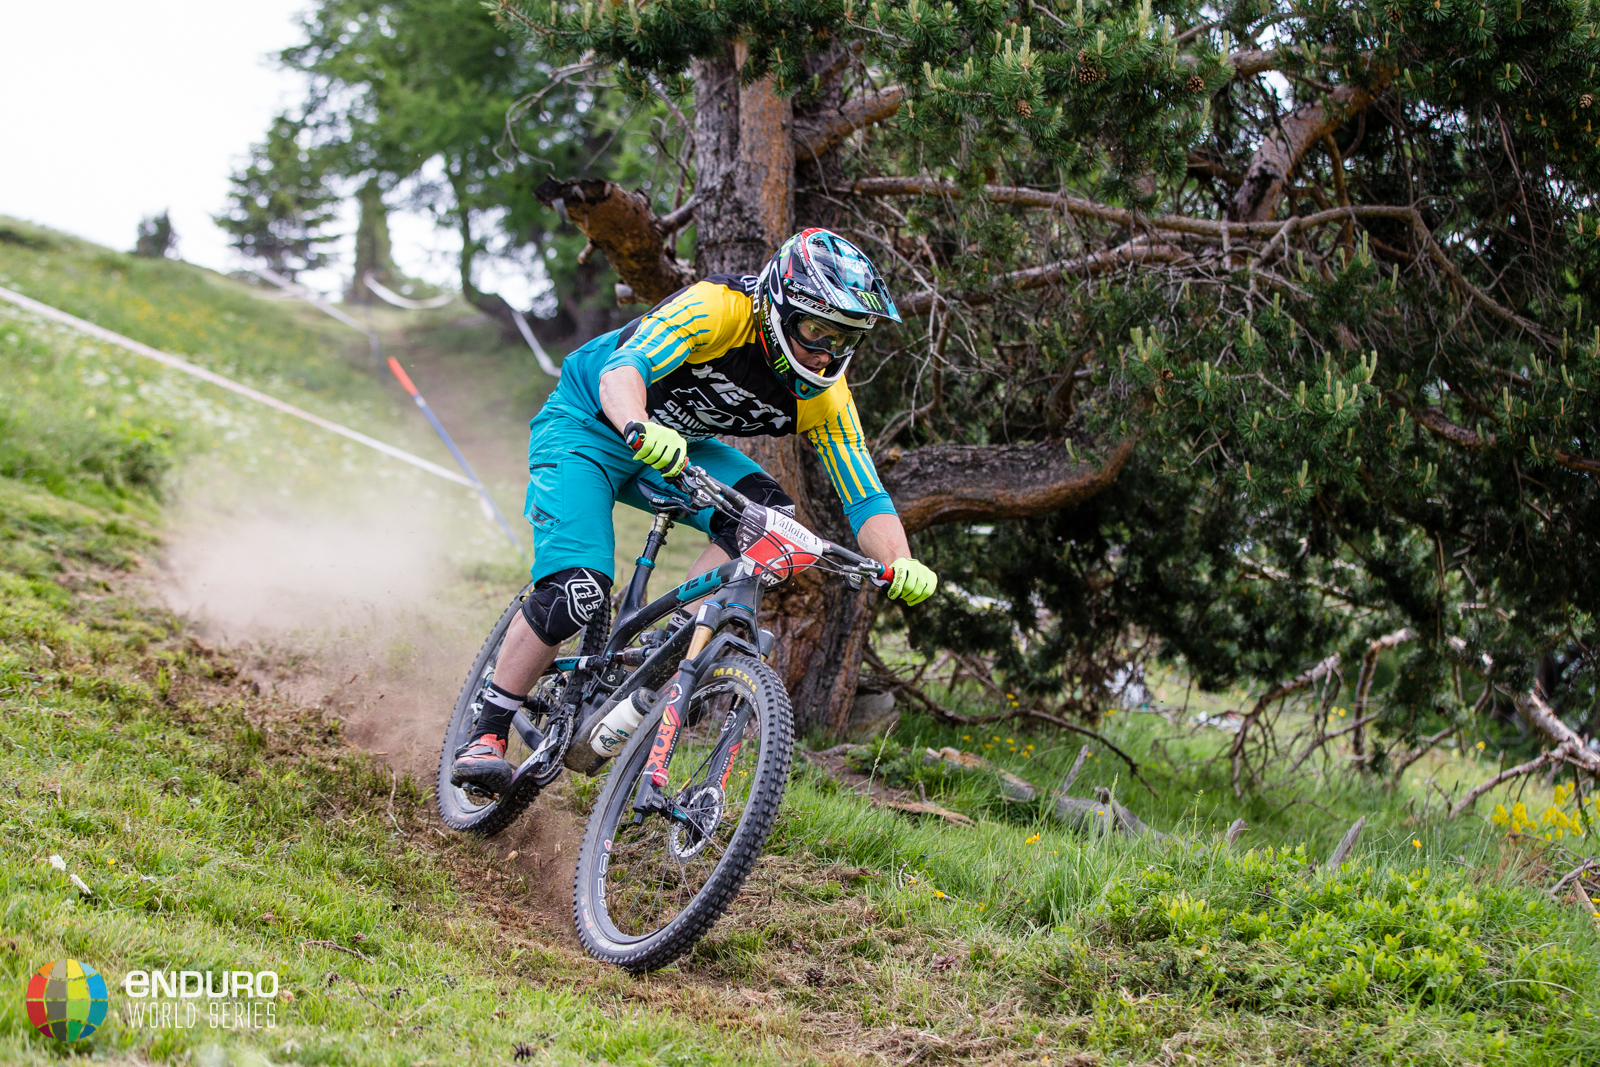 Jared Graves on stage four, EWS round 3 2014, Valloire. Photo by Matt Wragg